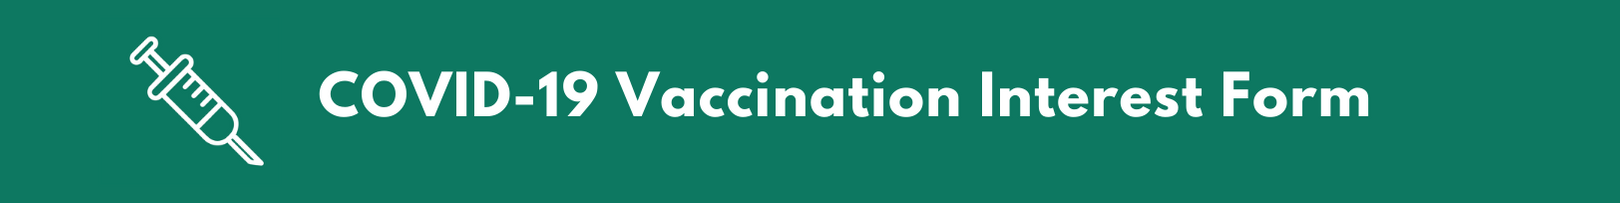 COVID-19-Vaccination-Interest-Form-Larger-Icon.png